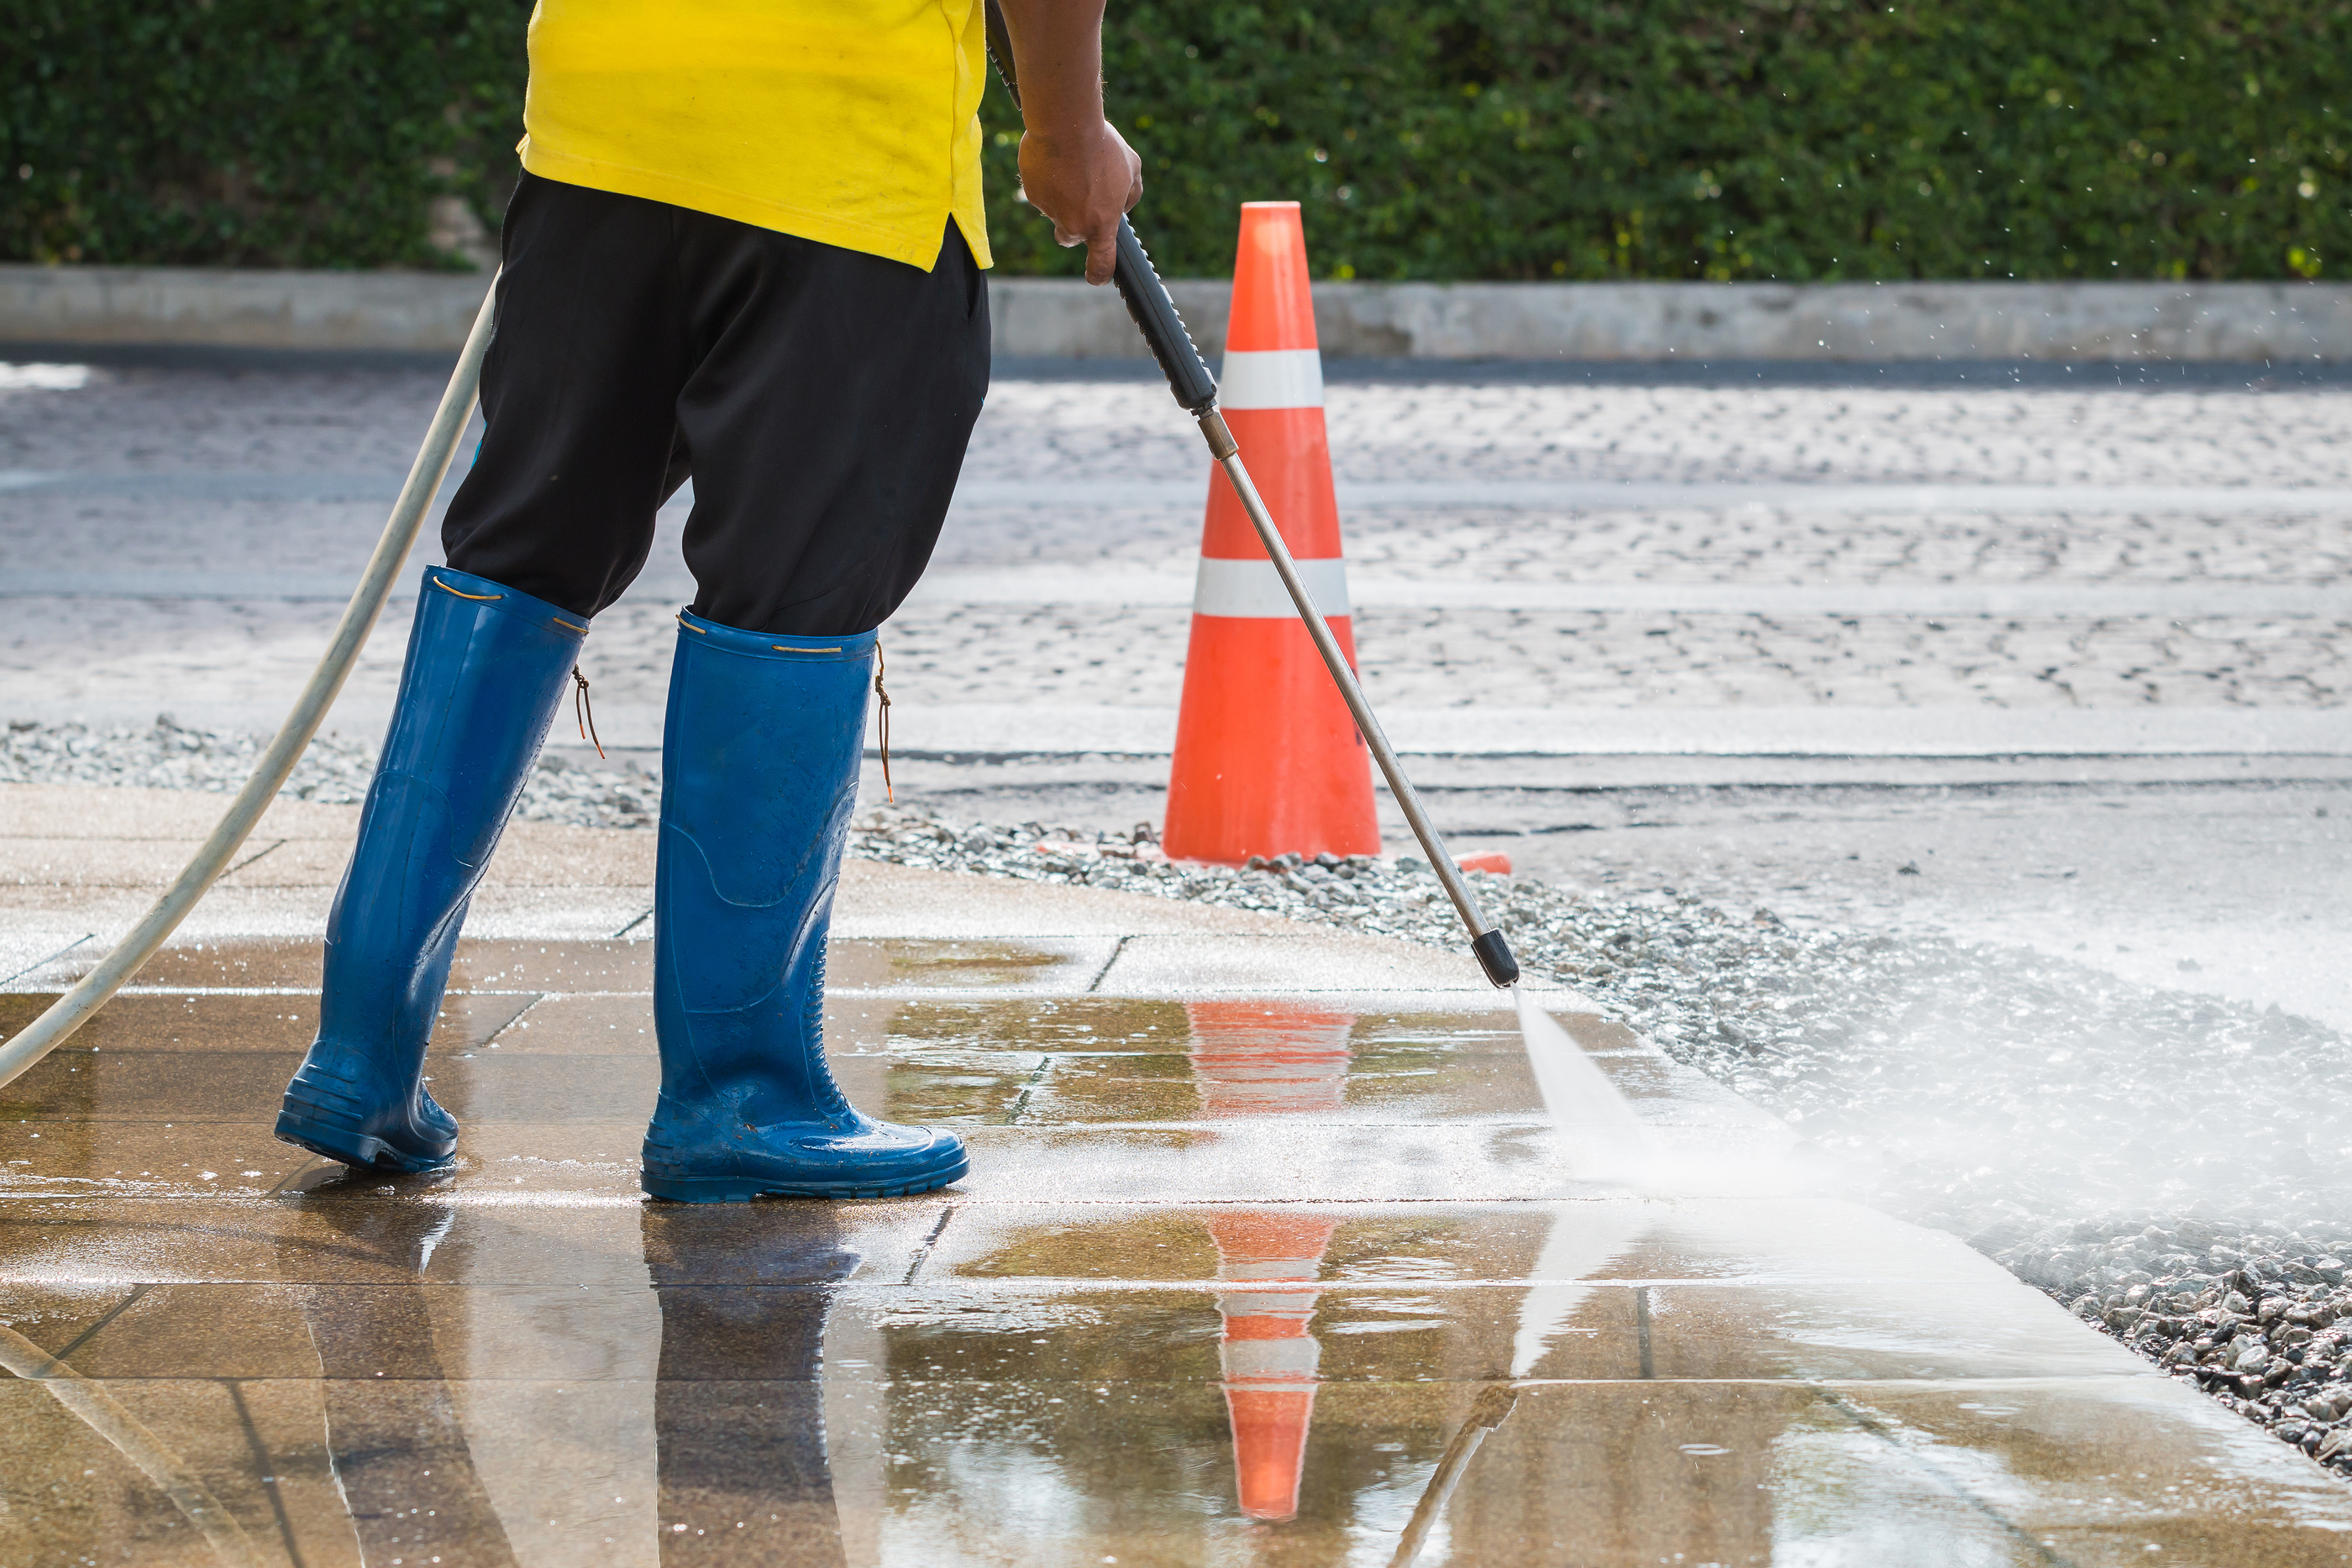 clifton parking lot pressure washing services